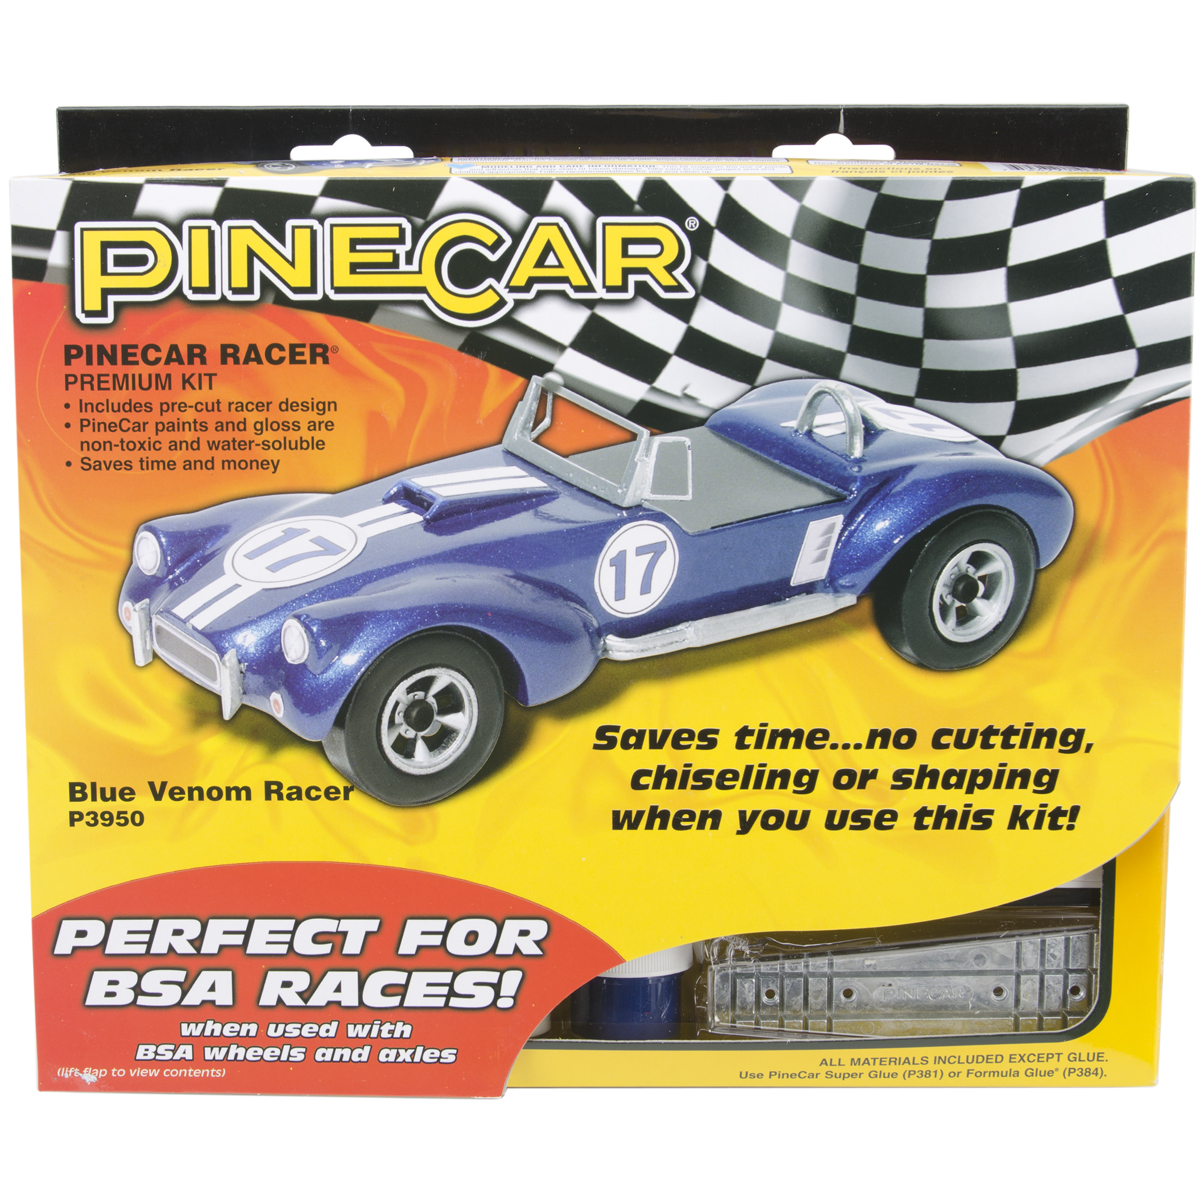 Pine Car Derby Racer Kit, Blue Venom